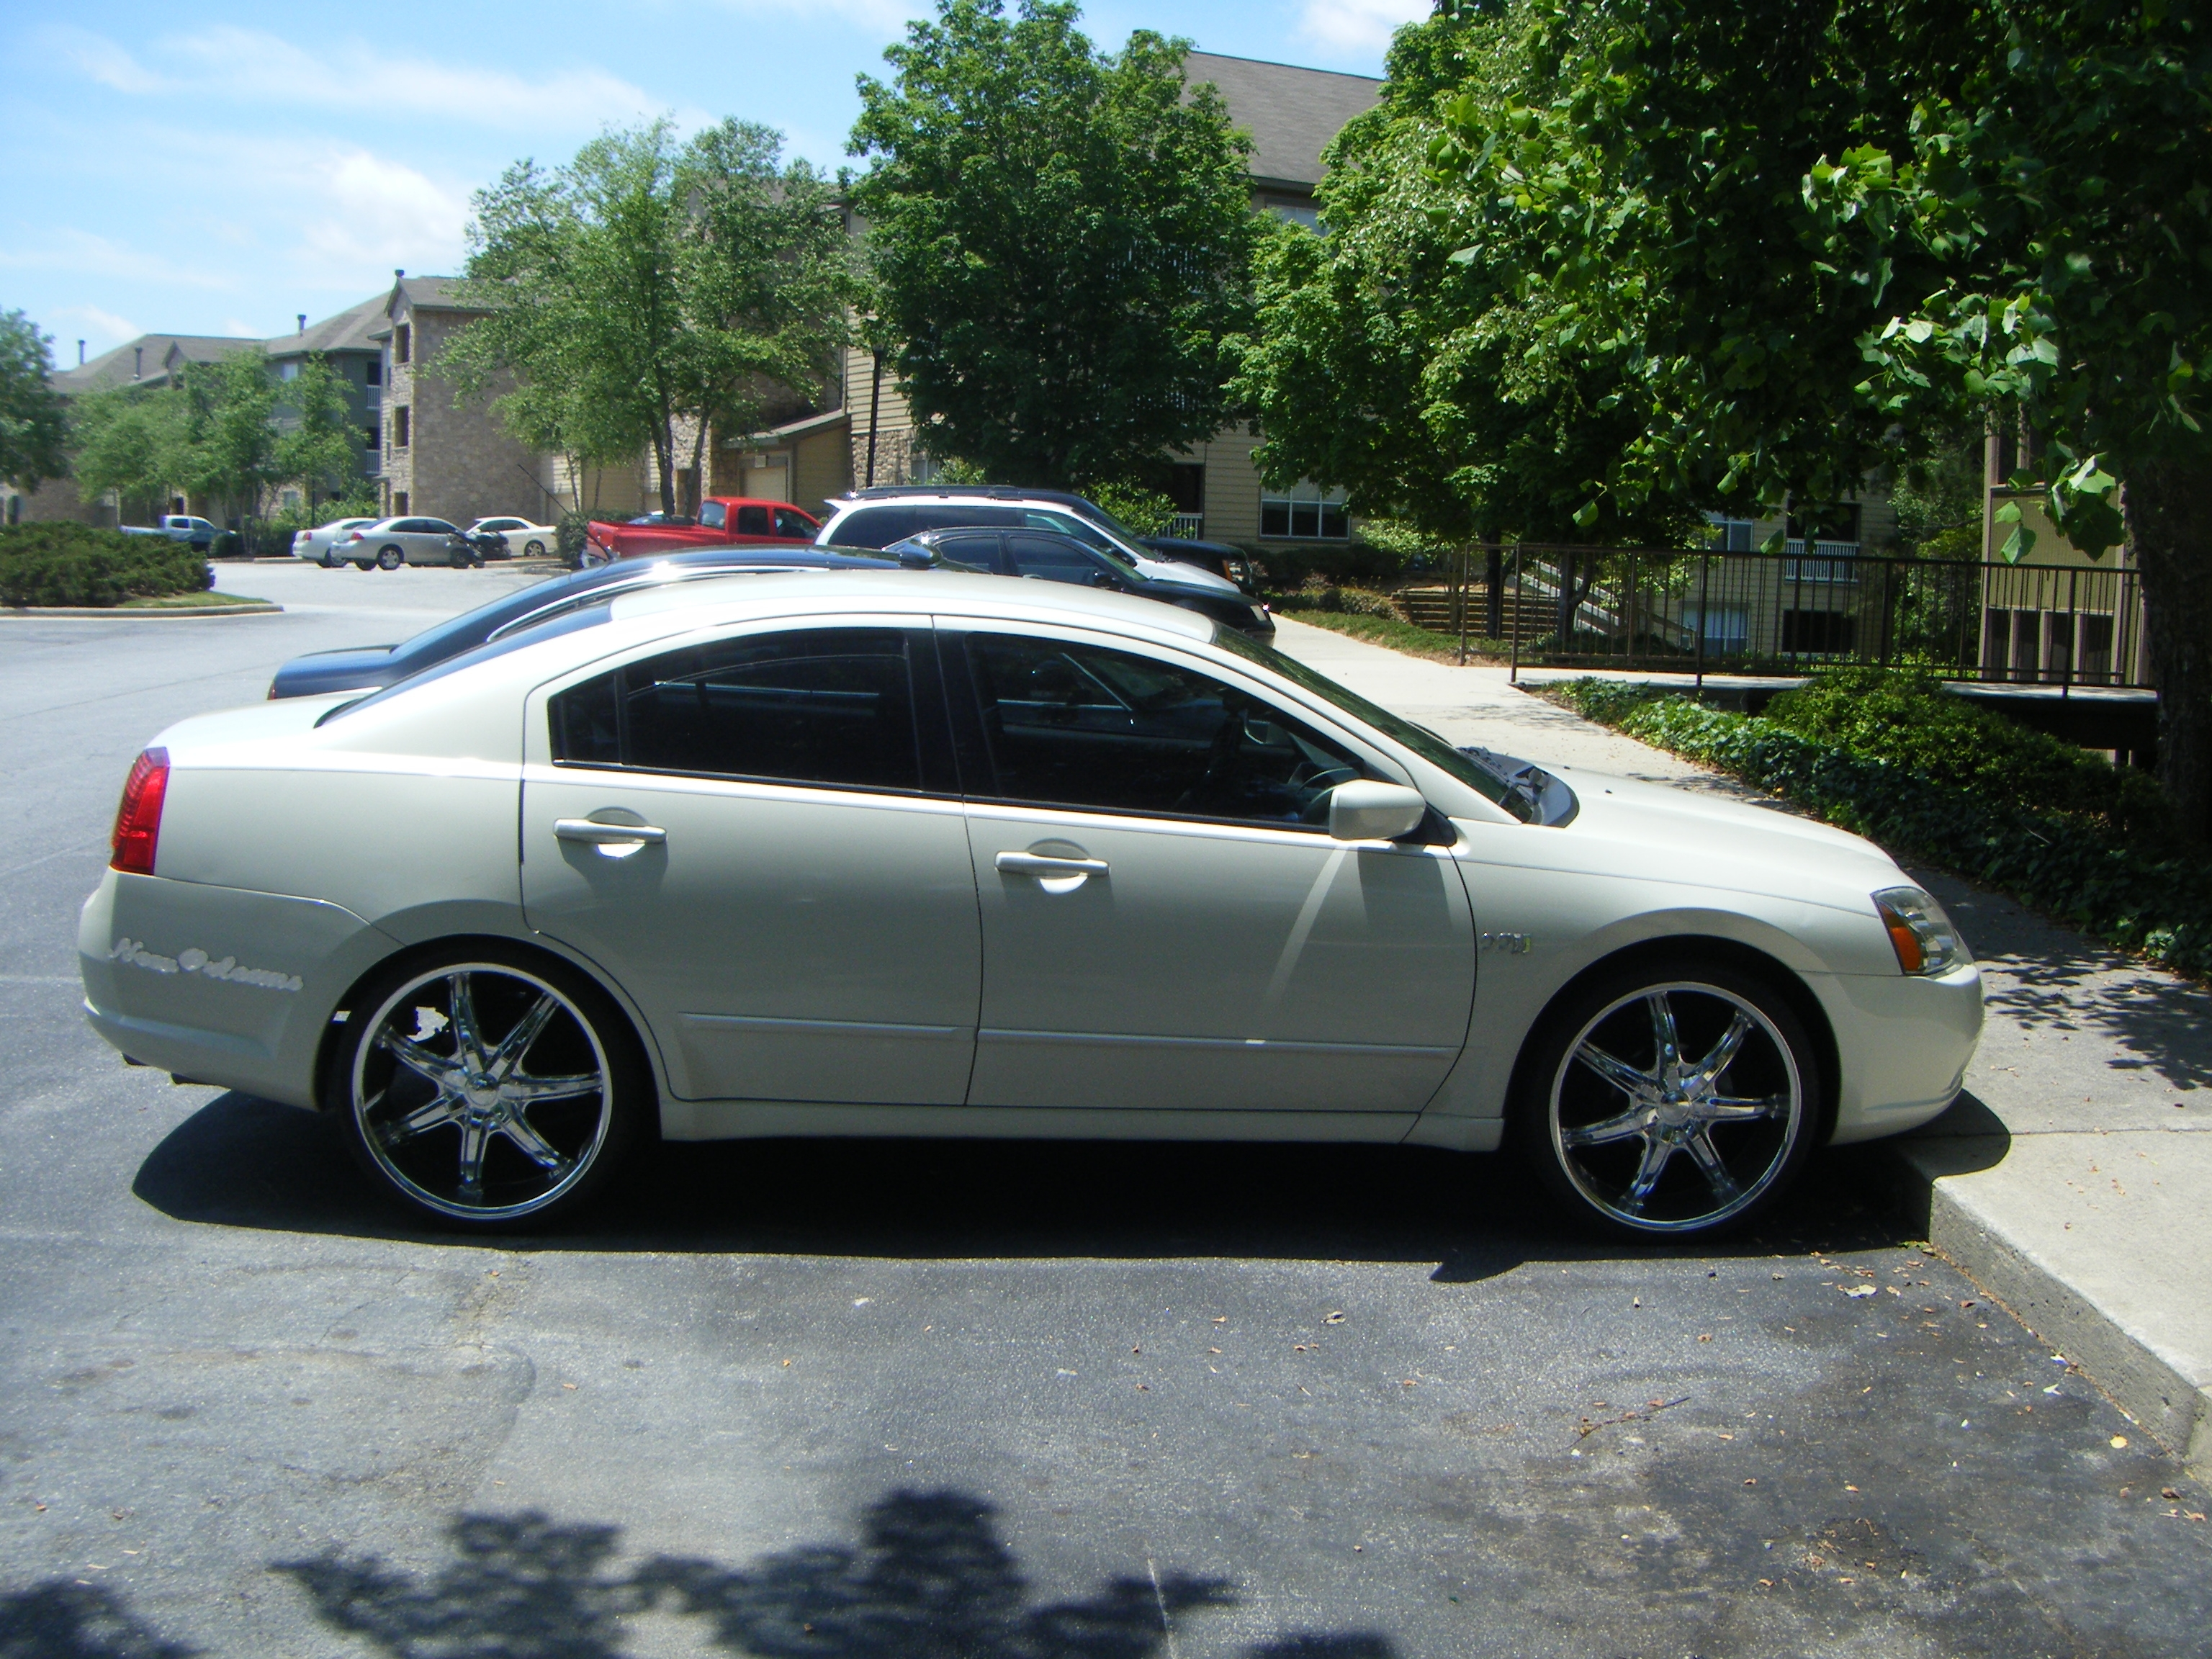 NewOrleansBoi84 2005 Mitsubishi Galant Specs, Photos, Modification Info at CarDomain